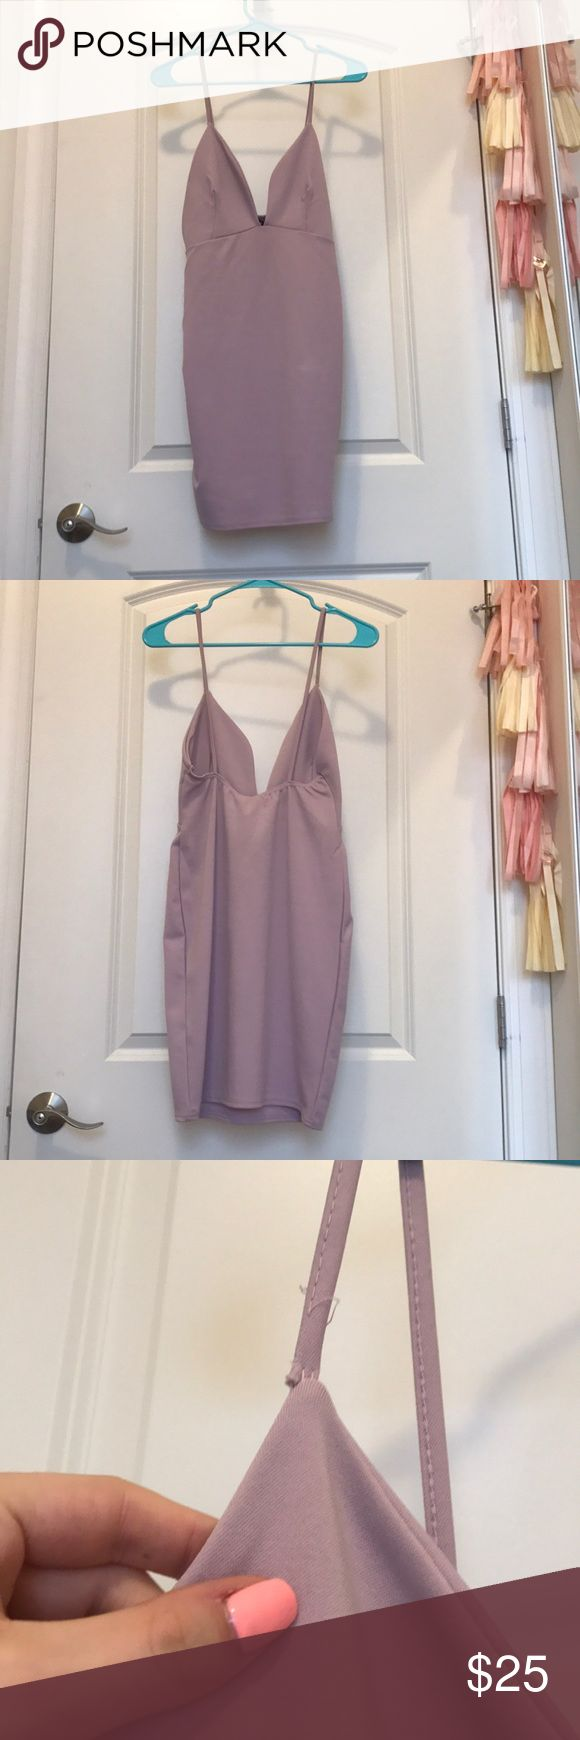 NWT Missguided Dress Gorgeous NWT mauve colored dress is perfect for any occasion! Deep v front and low back. Spaghetti straps, form-fitting shape. Small rip on one strap and in the front but could easily be fixed and not noticeable. Missguided Dresses Mini